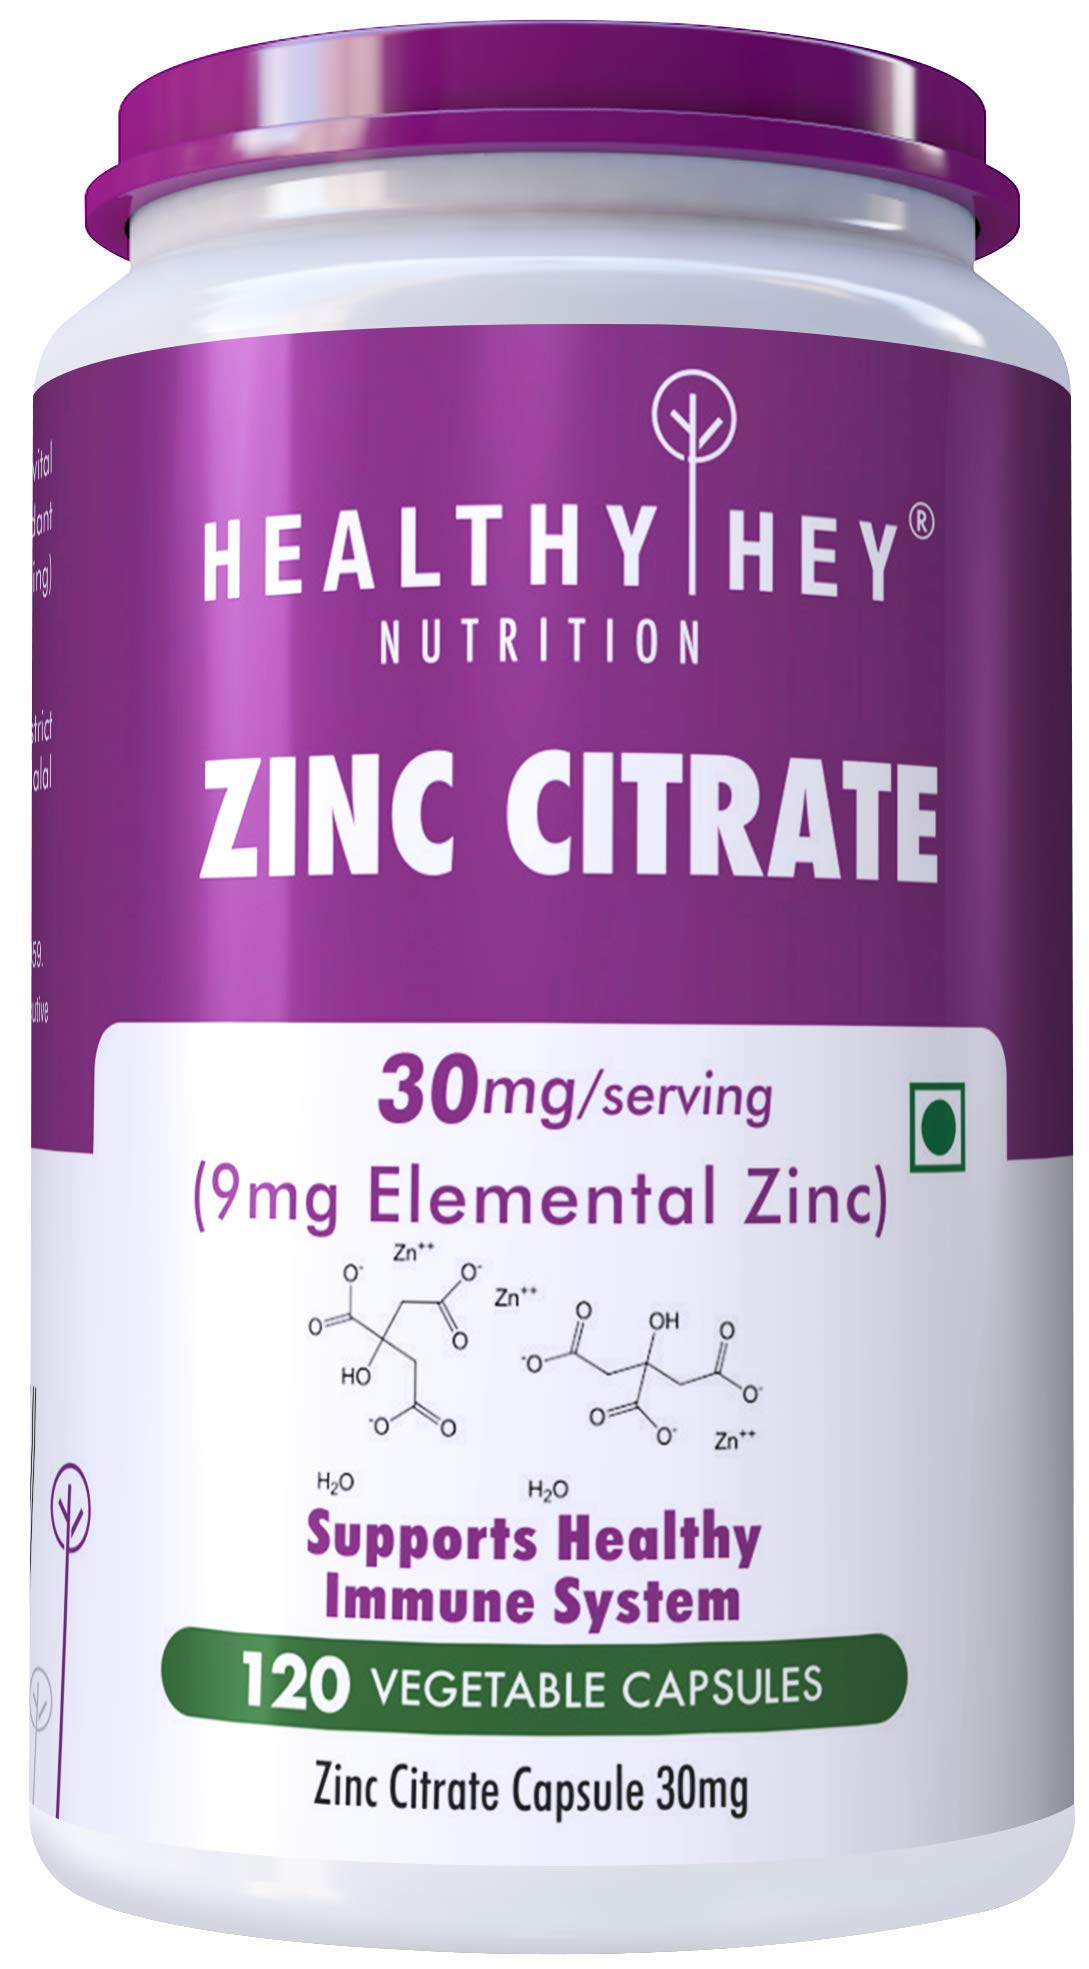 Healthy Hey Nutrition Zinc Citrate, Supports Immune and Immunity - 120 Veg Capsules